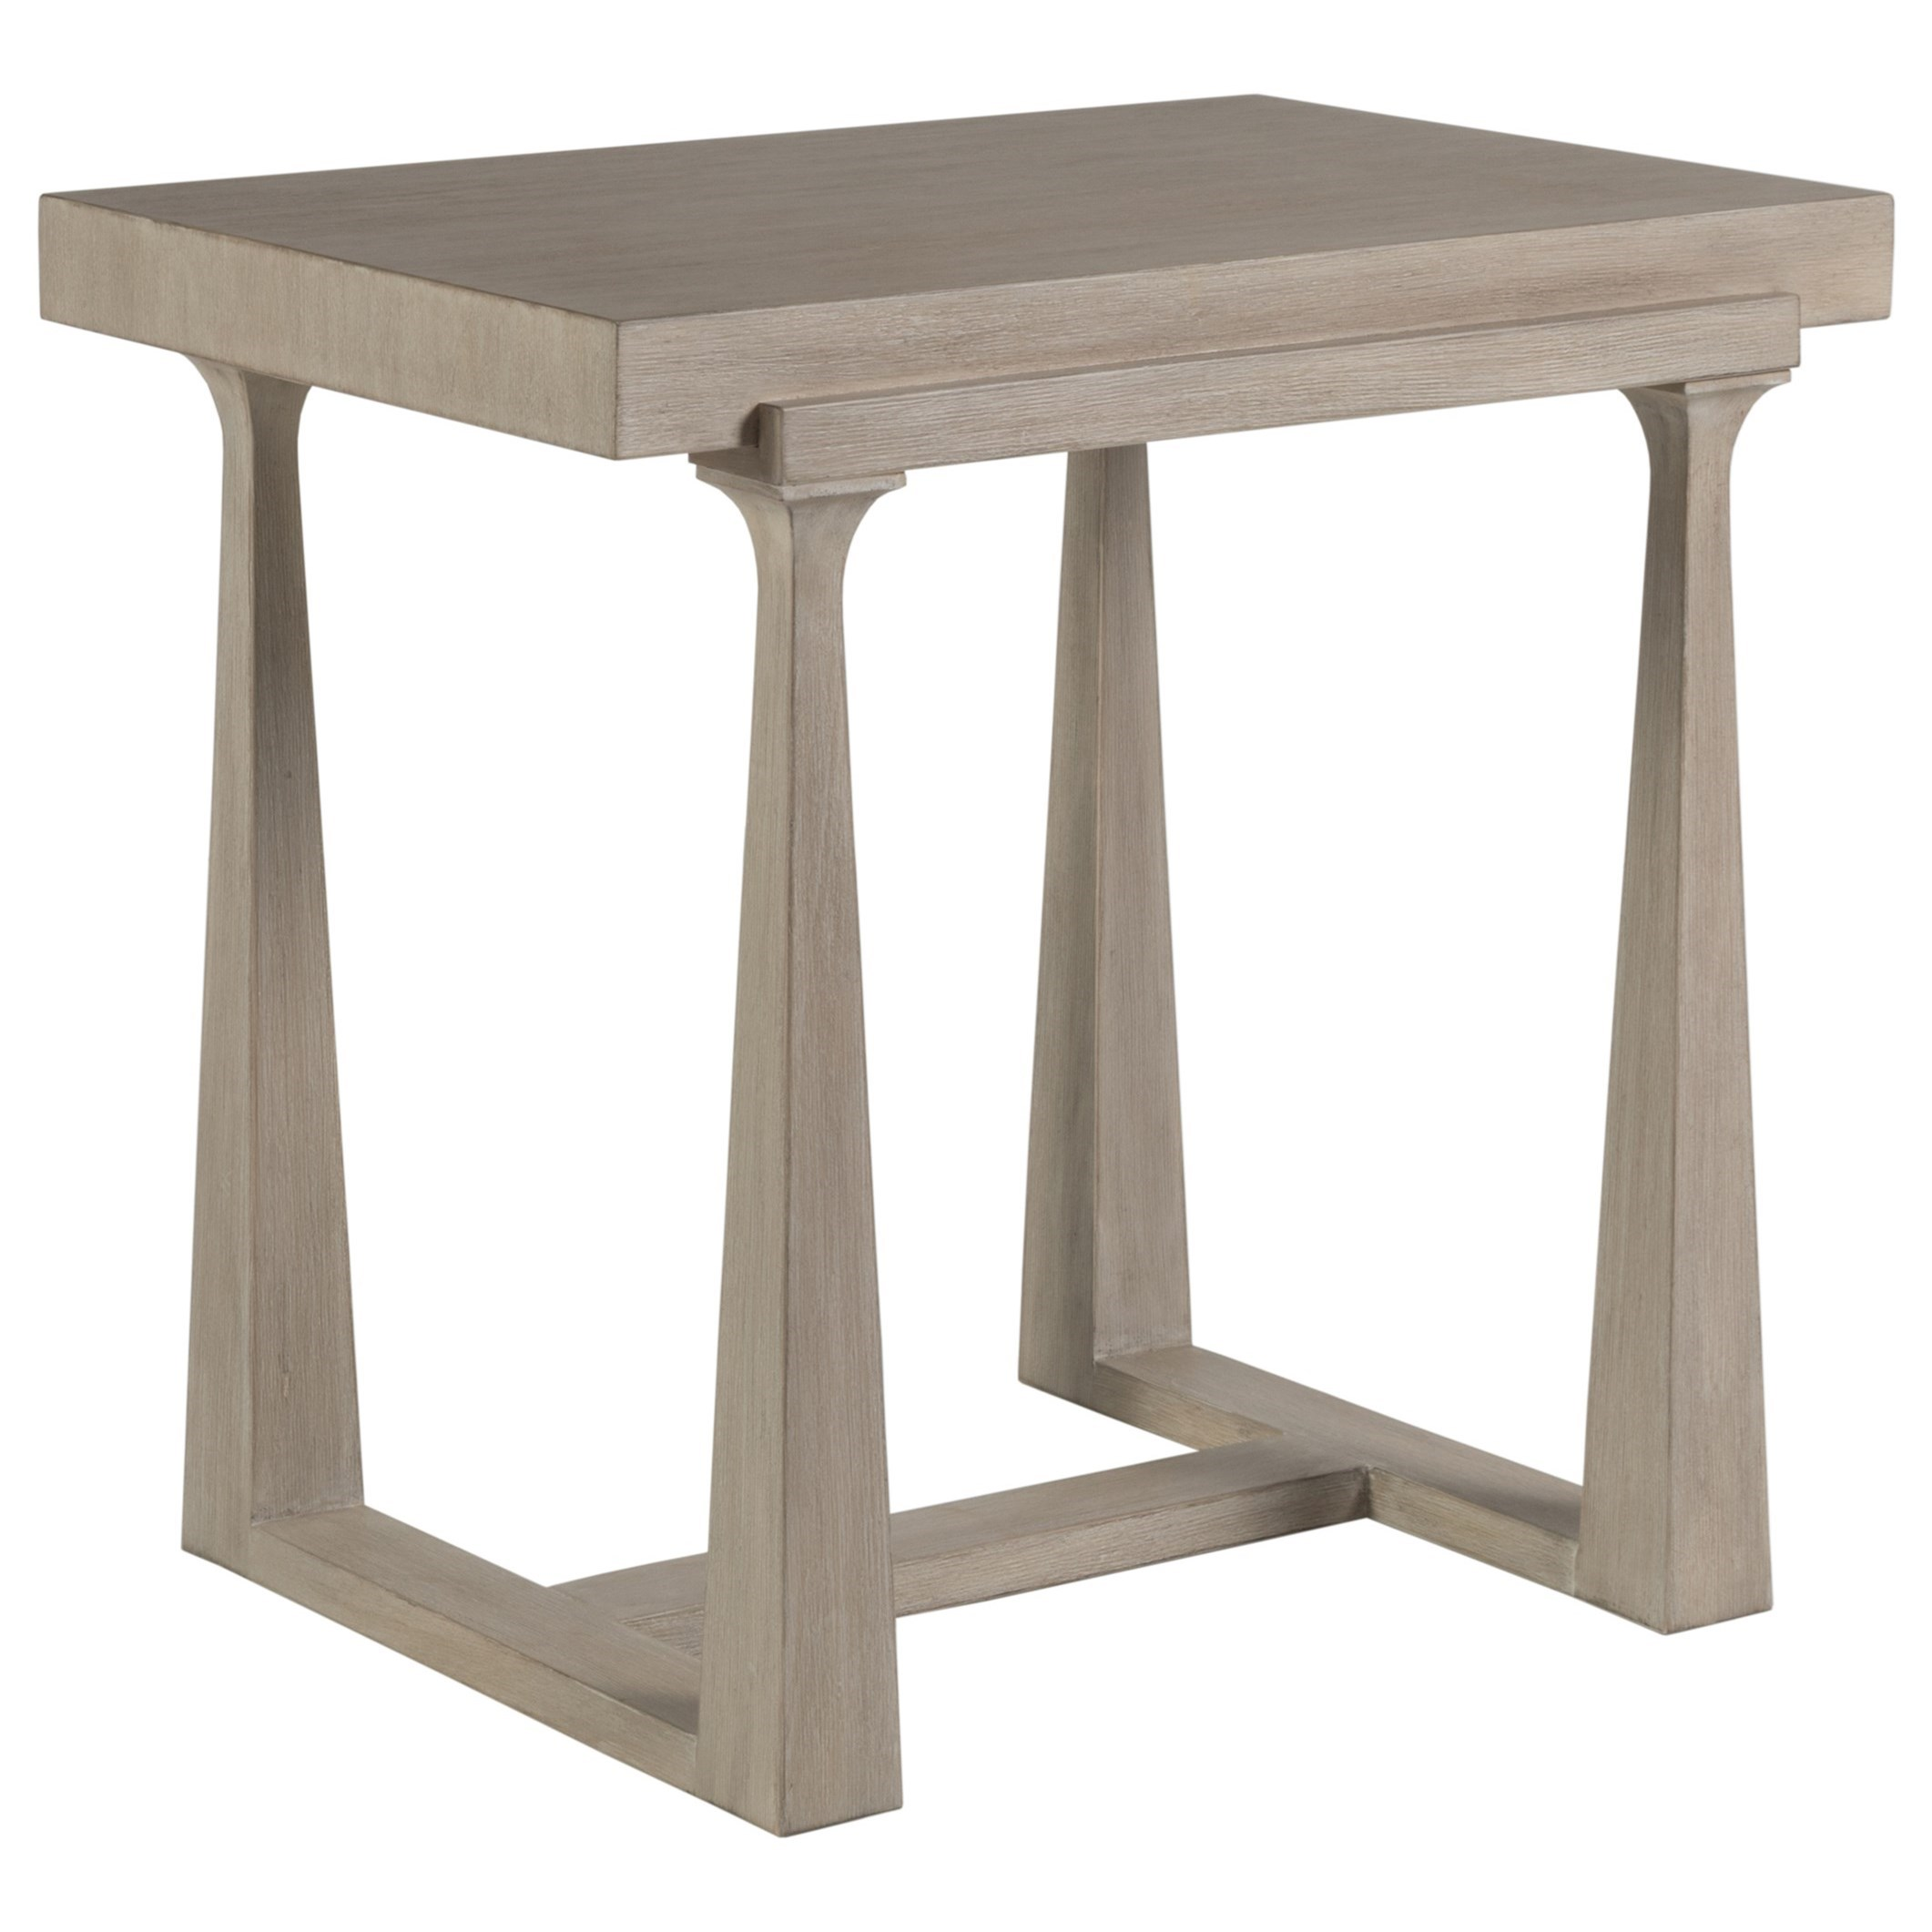 Cohesion Grantland Rectangular End Table by Artistica at Baer's Furniture